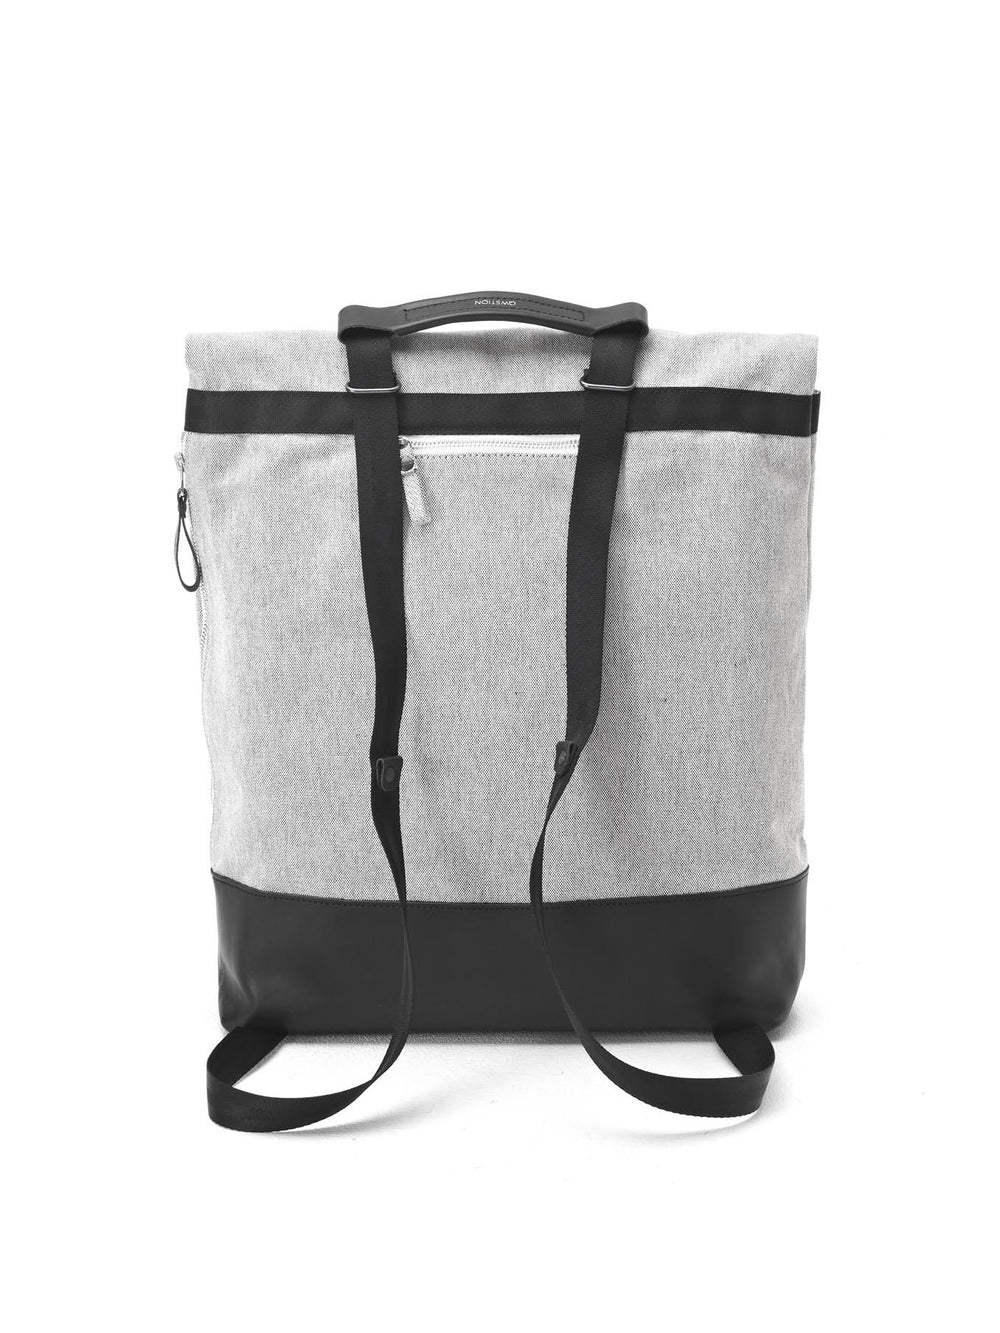 This Tote can transform into a backpack thanks its Qwstion signature strap system